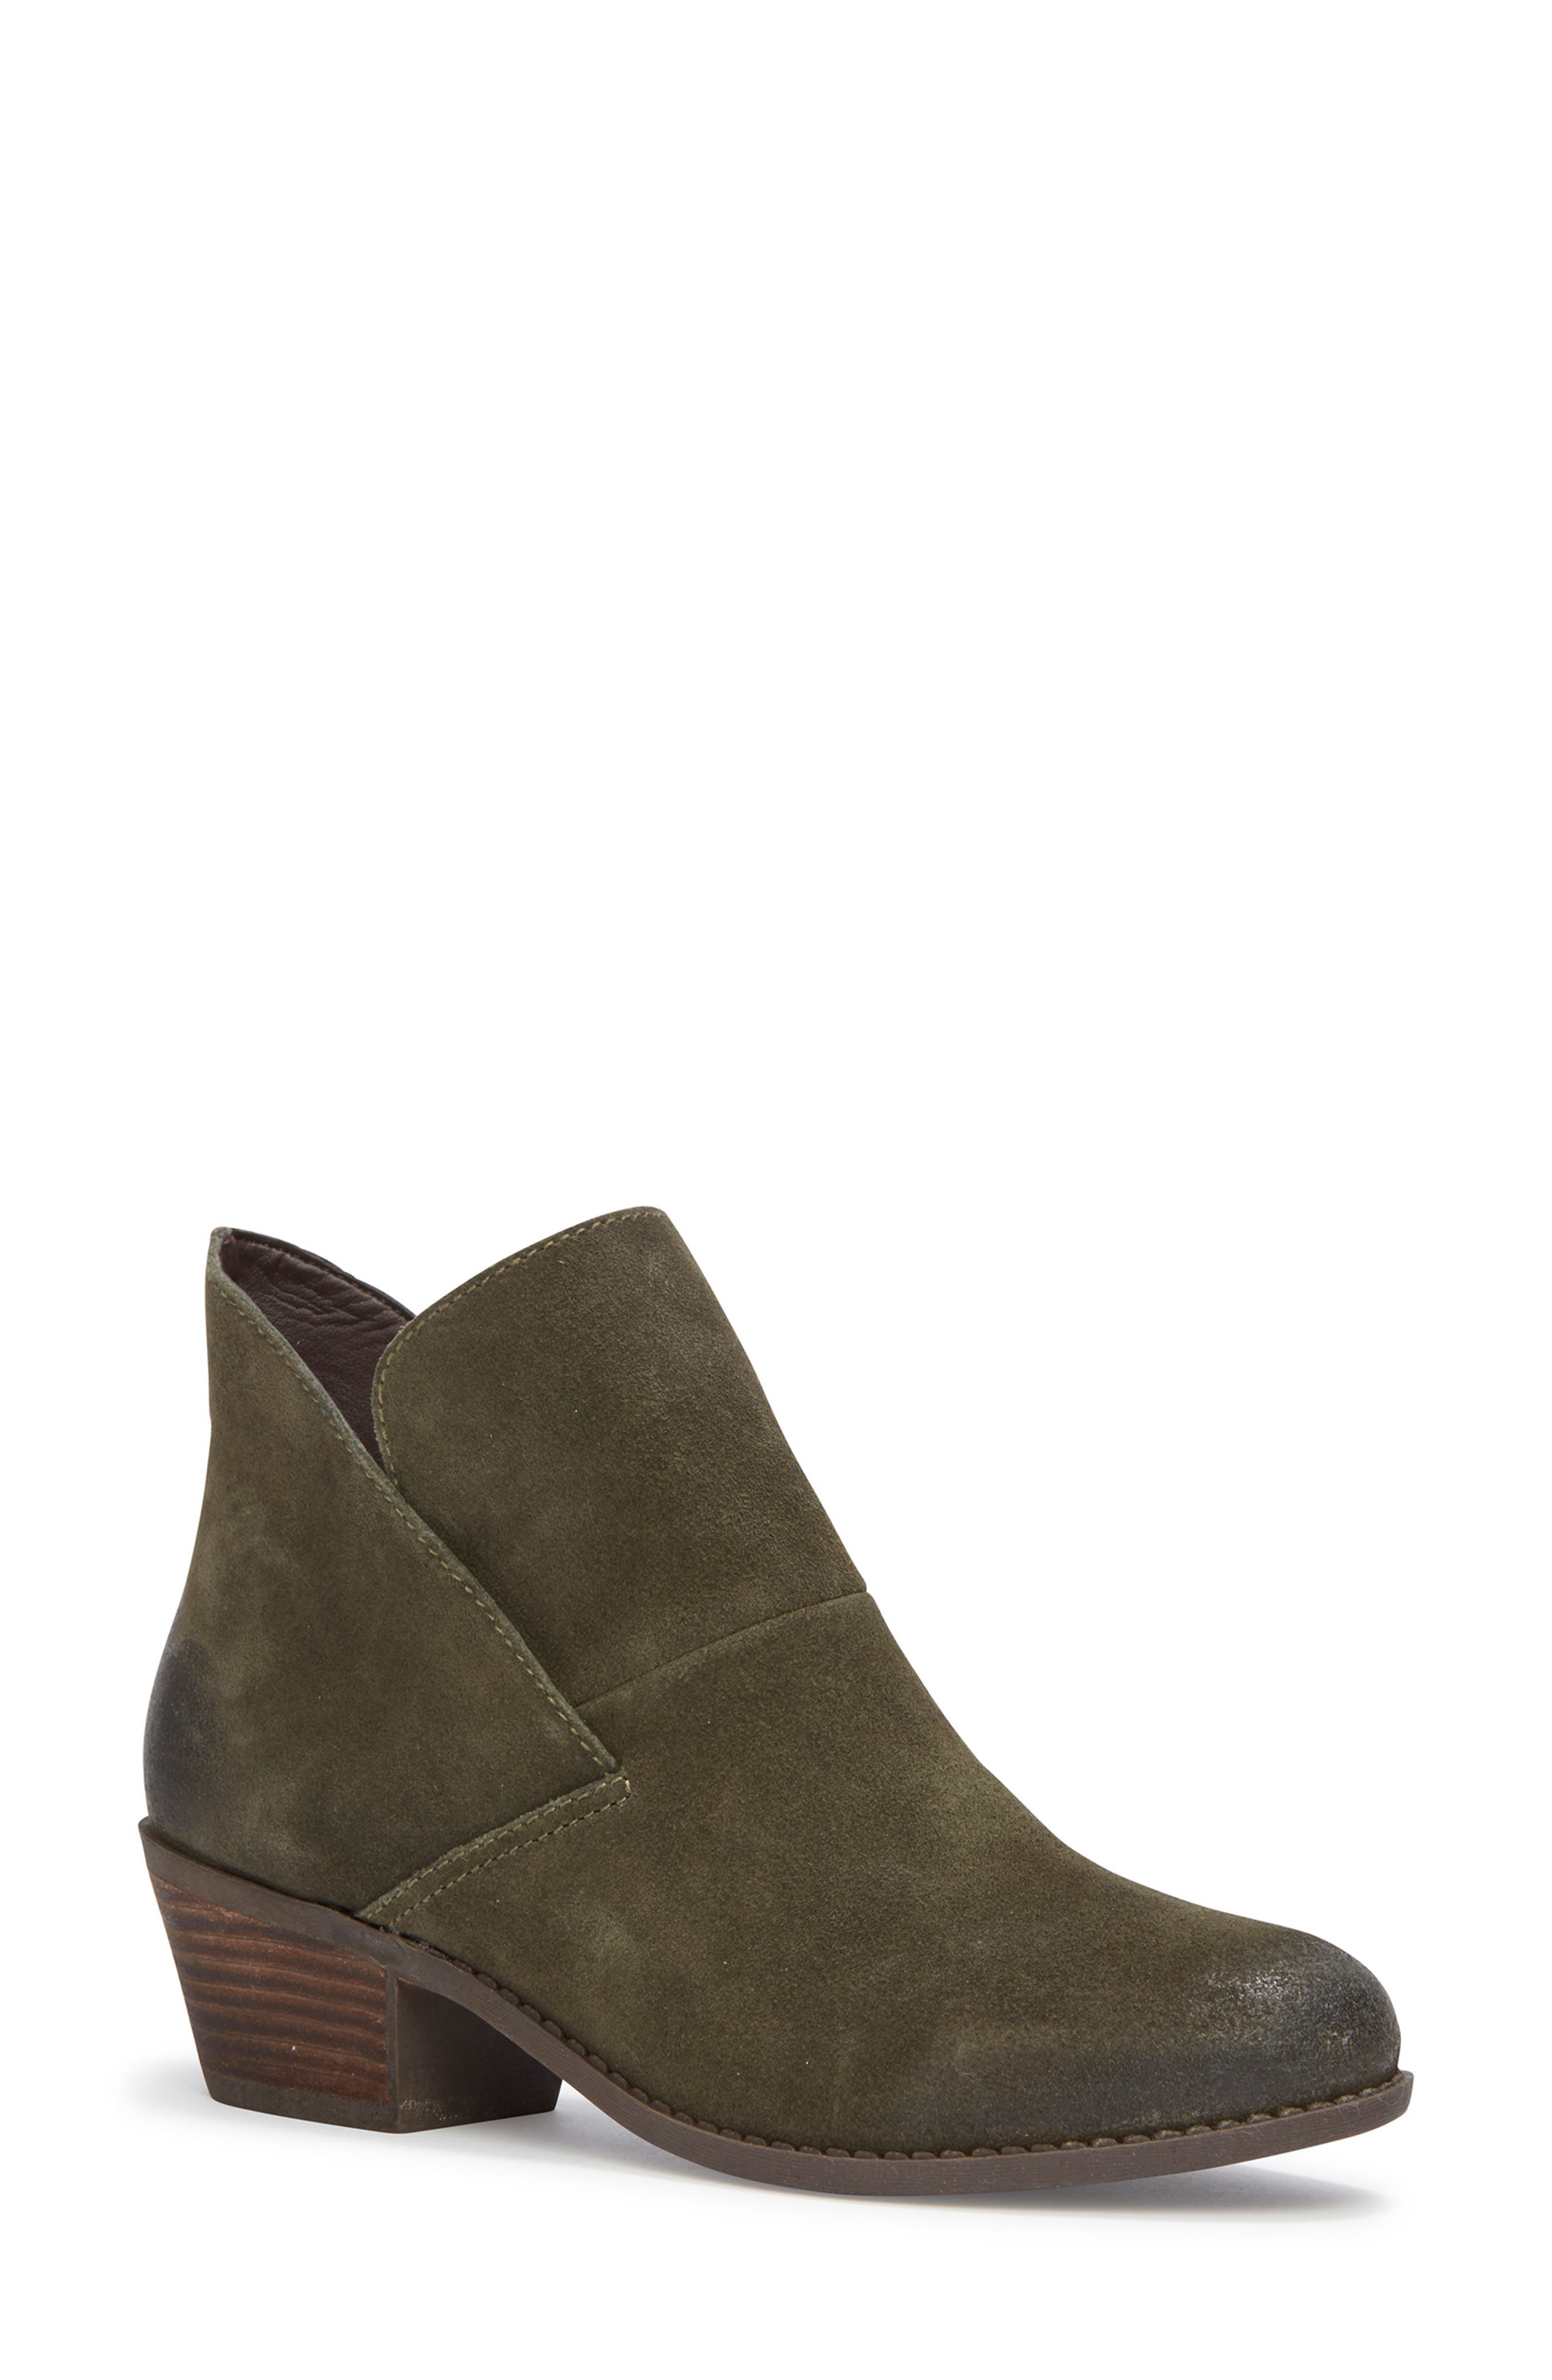 Me Too Zena Ankle Boot,                             Main thumbnail 1, color,                             Moss Suede